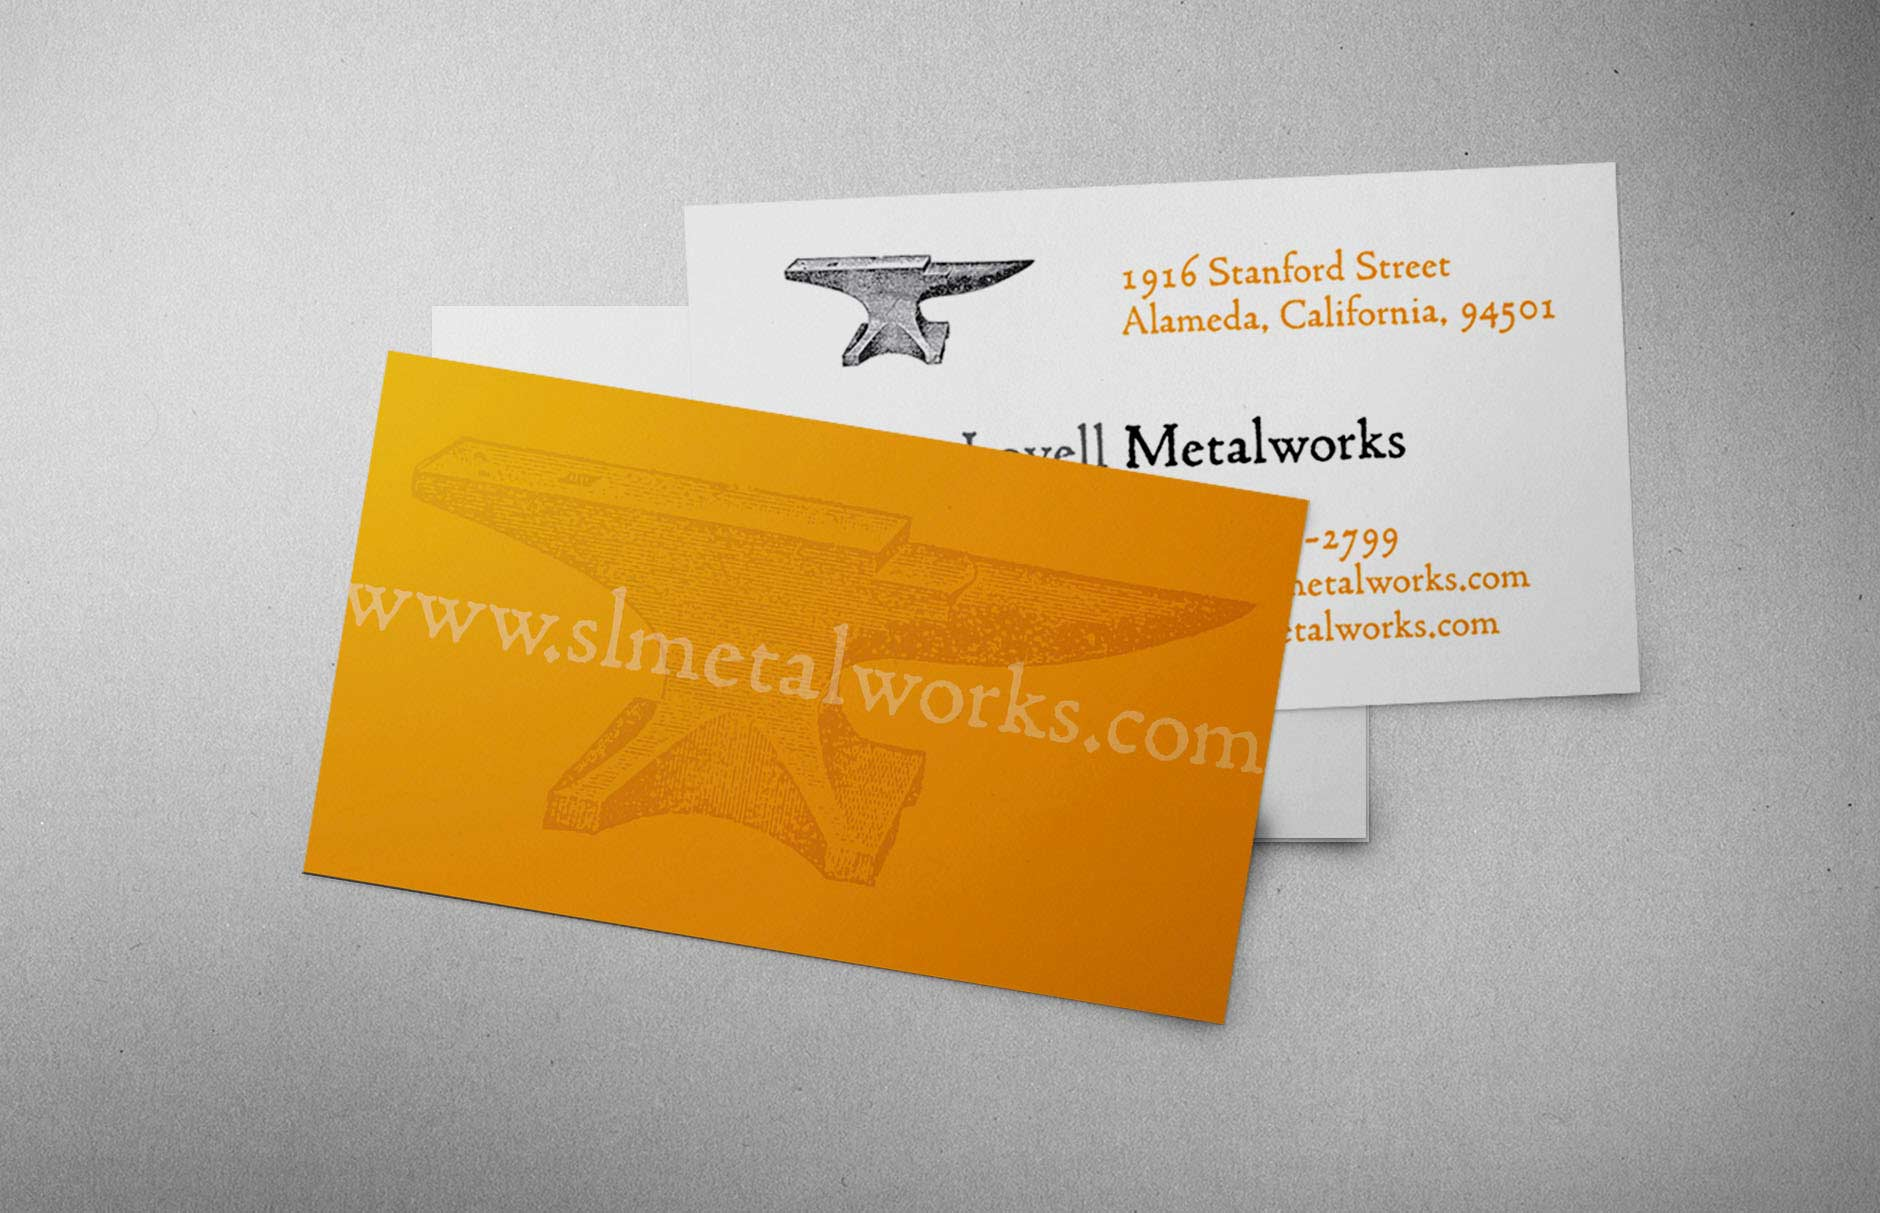 Shawnlovell Identity Design